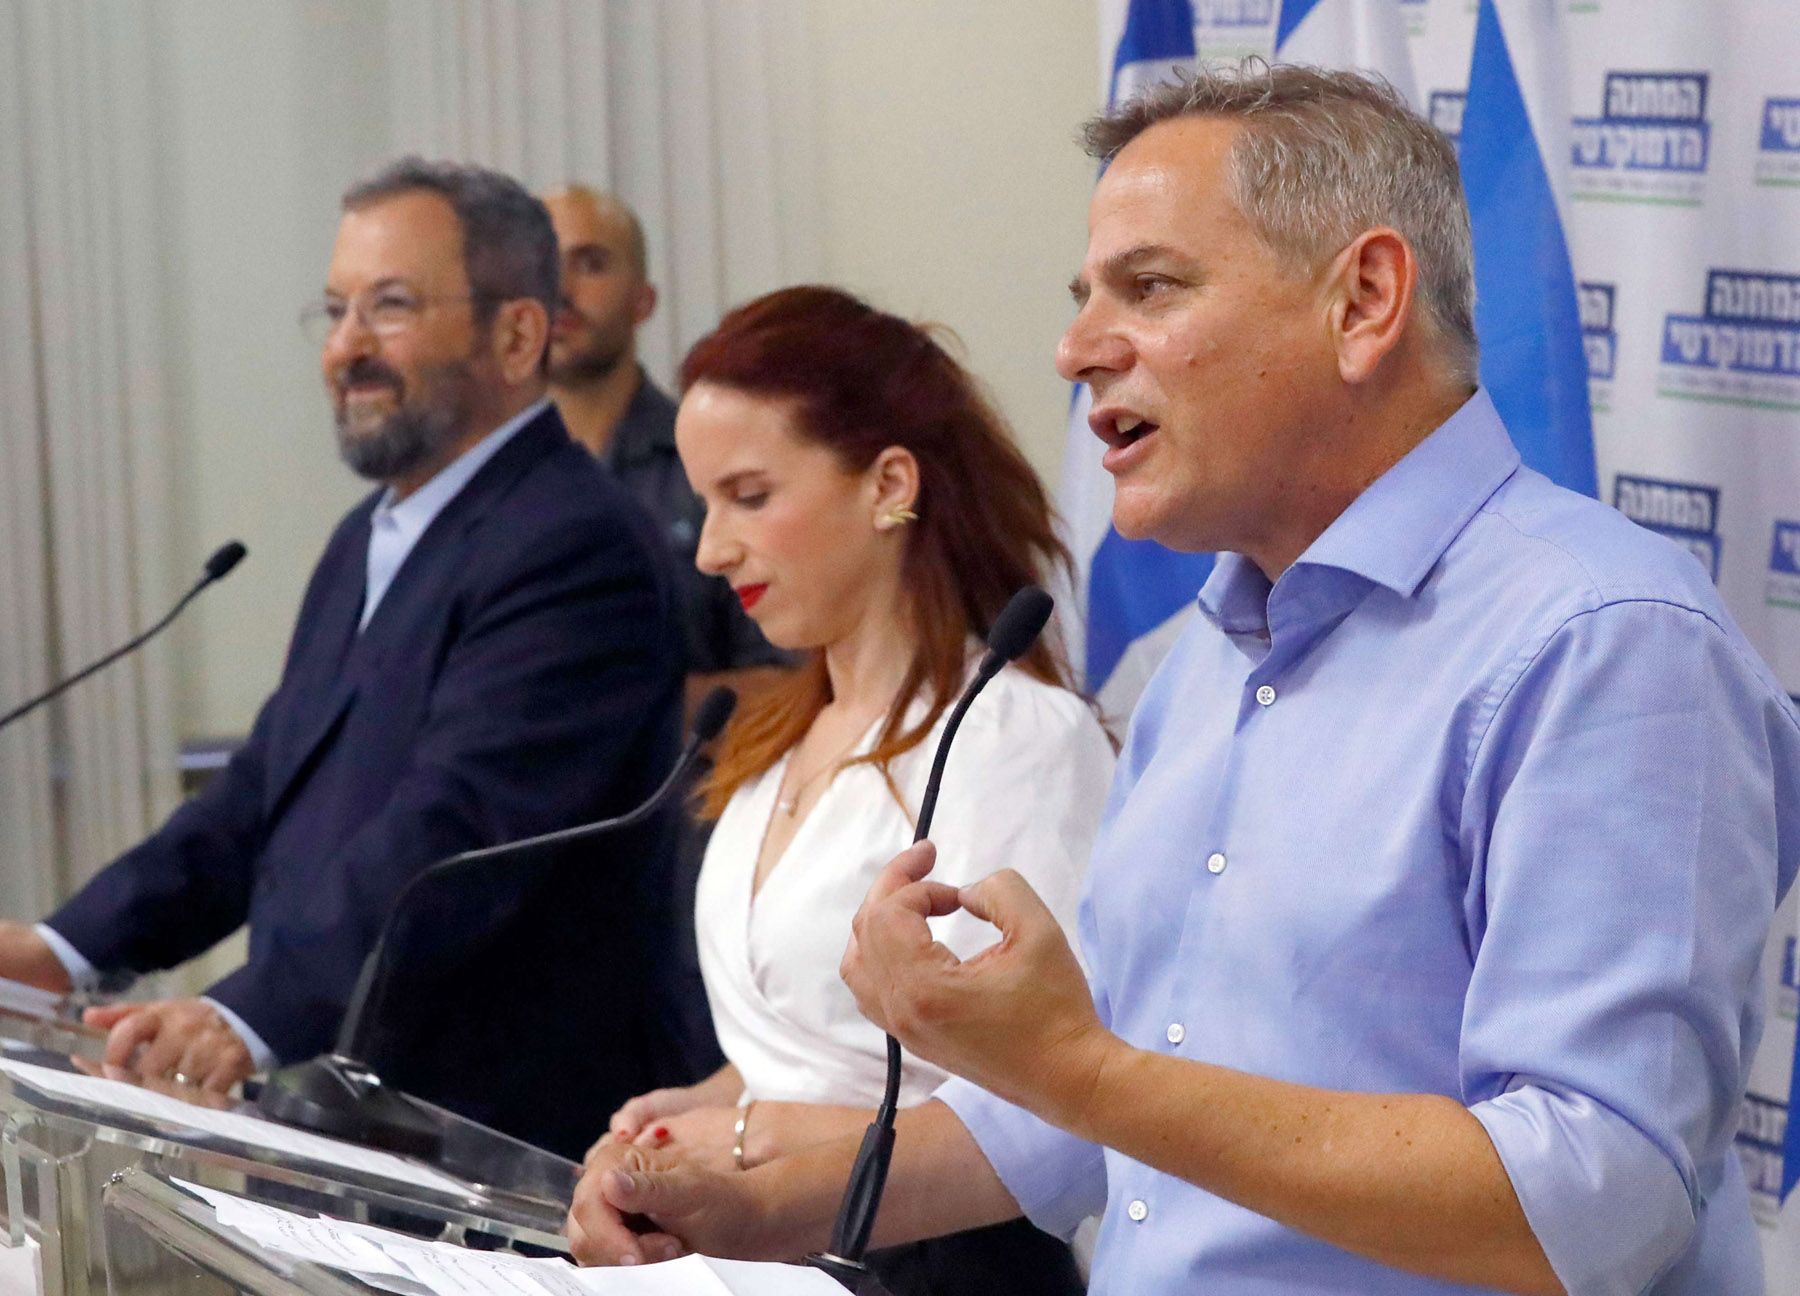 More of the same? Former Israeli Prime Minister Ehud Barak (L) attends the launch of the Democratic Union list, which he formed with newly elected Meretz head Nitzan Horowitz (R) and Stav Shaffir (C), Tel Aviv, July 25.  (AFP)